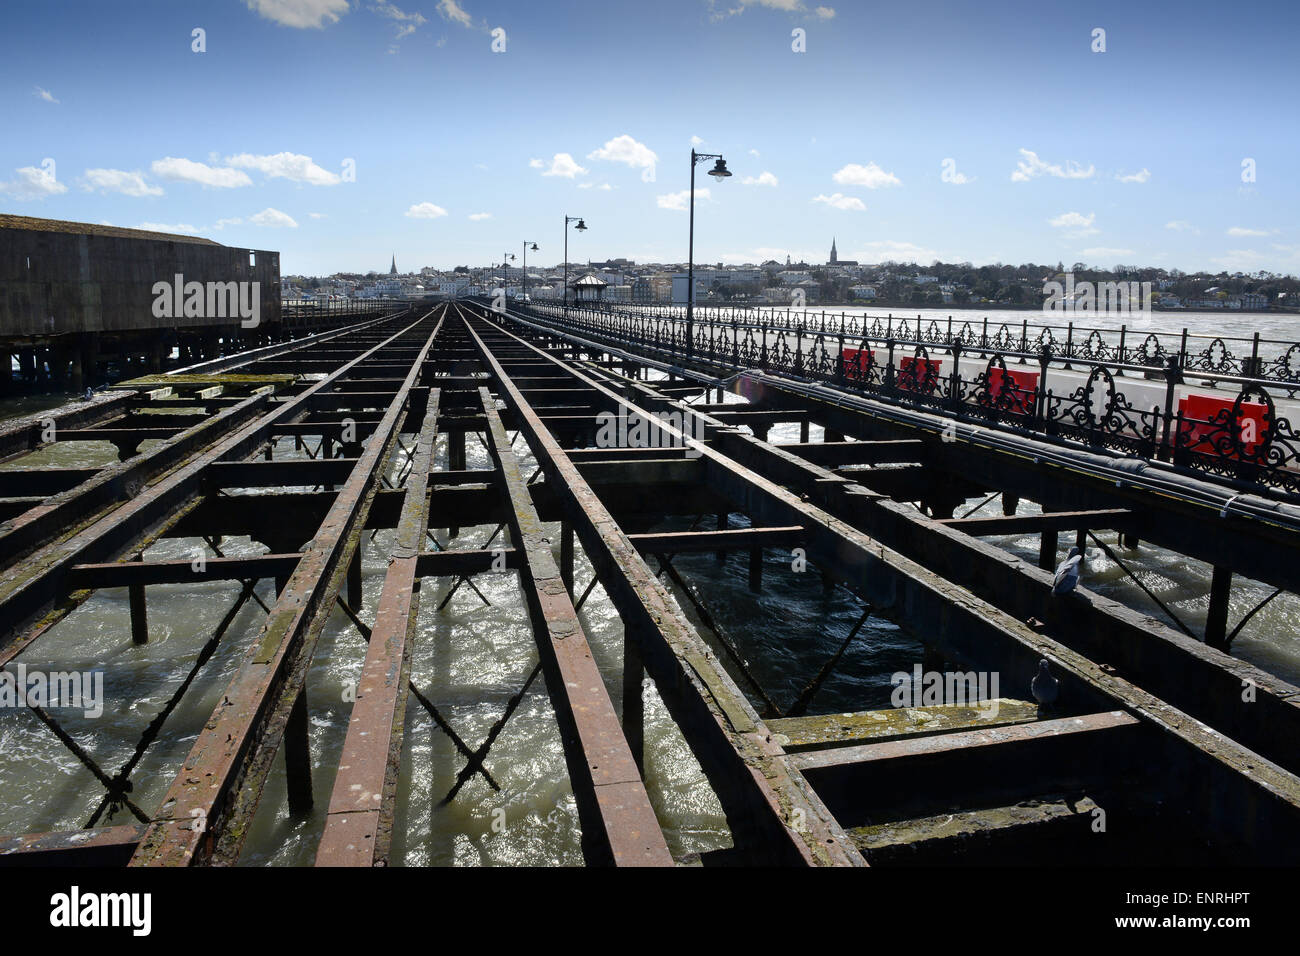 Ryde Pier disused tramway Isle of Wight - Stock Image